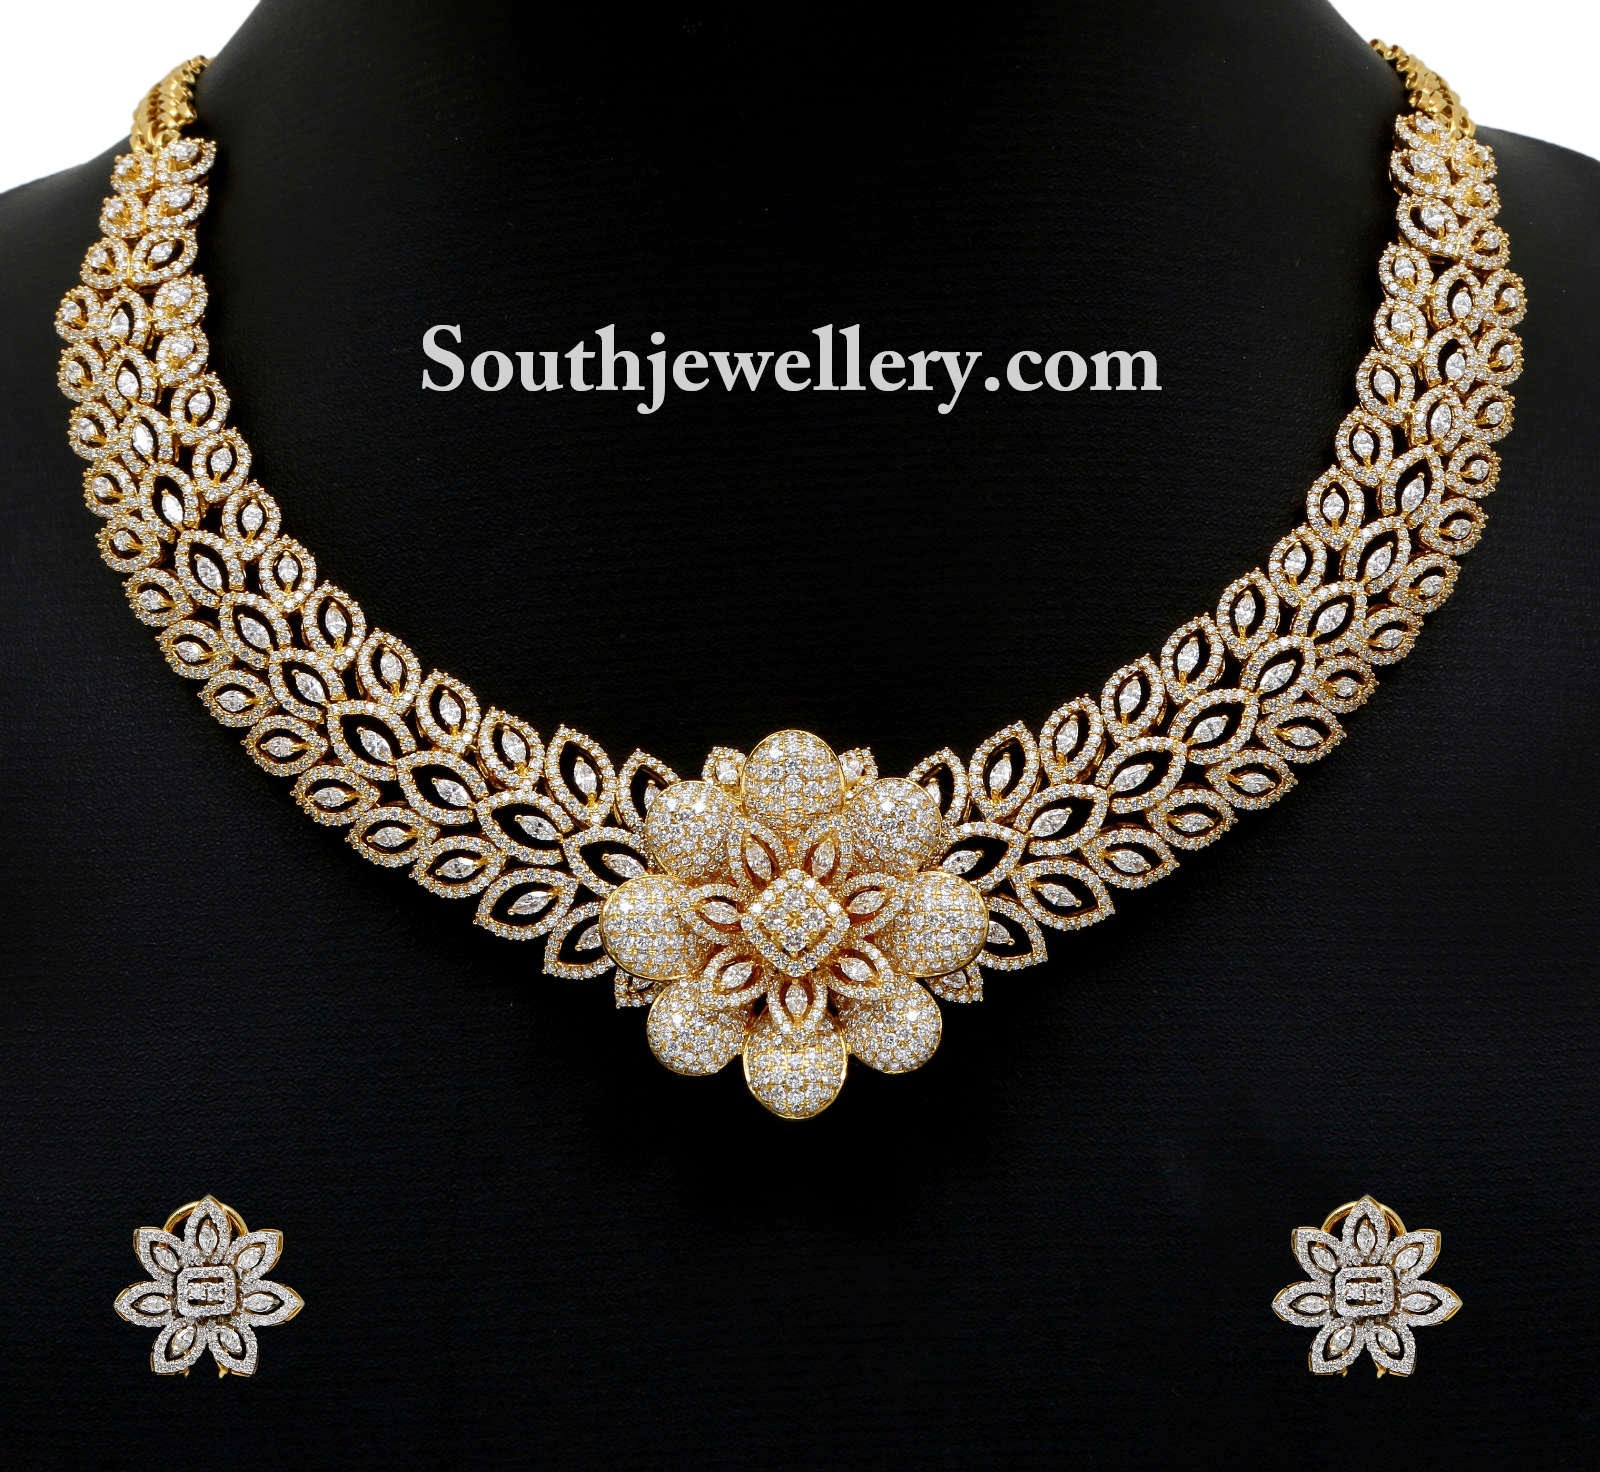 Indian Gold Jewellery Necklace Designs With Price: Astonishing Diamond Necklace By Vummidi Jewellers